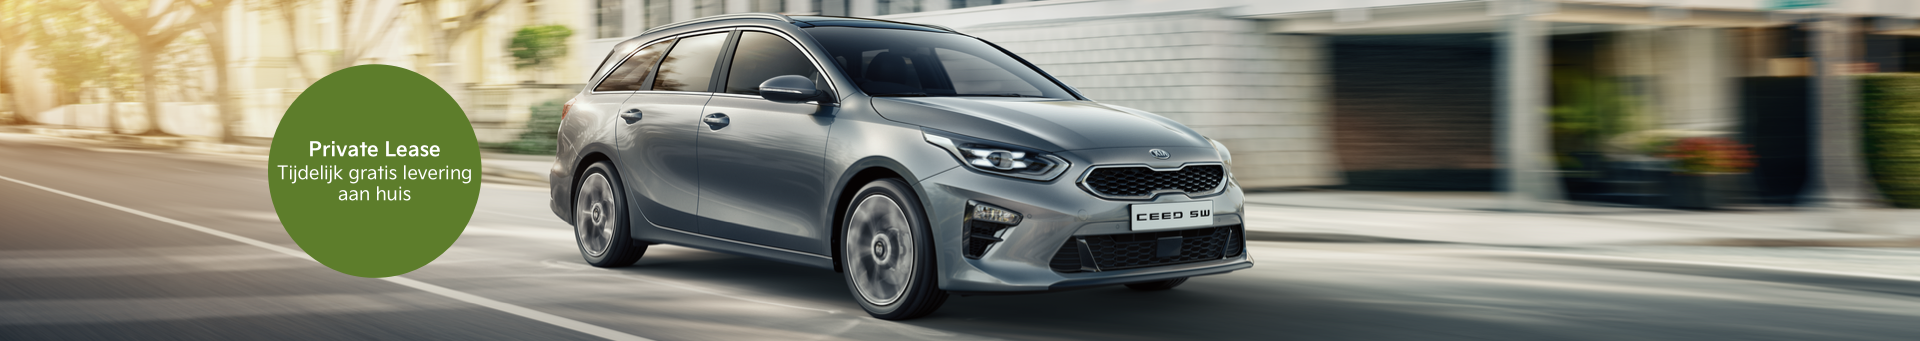 Kia Autolease-direct modellen